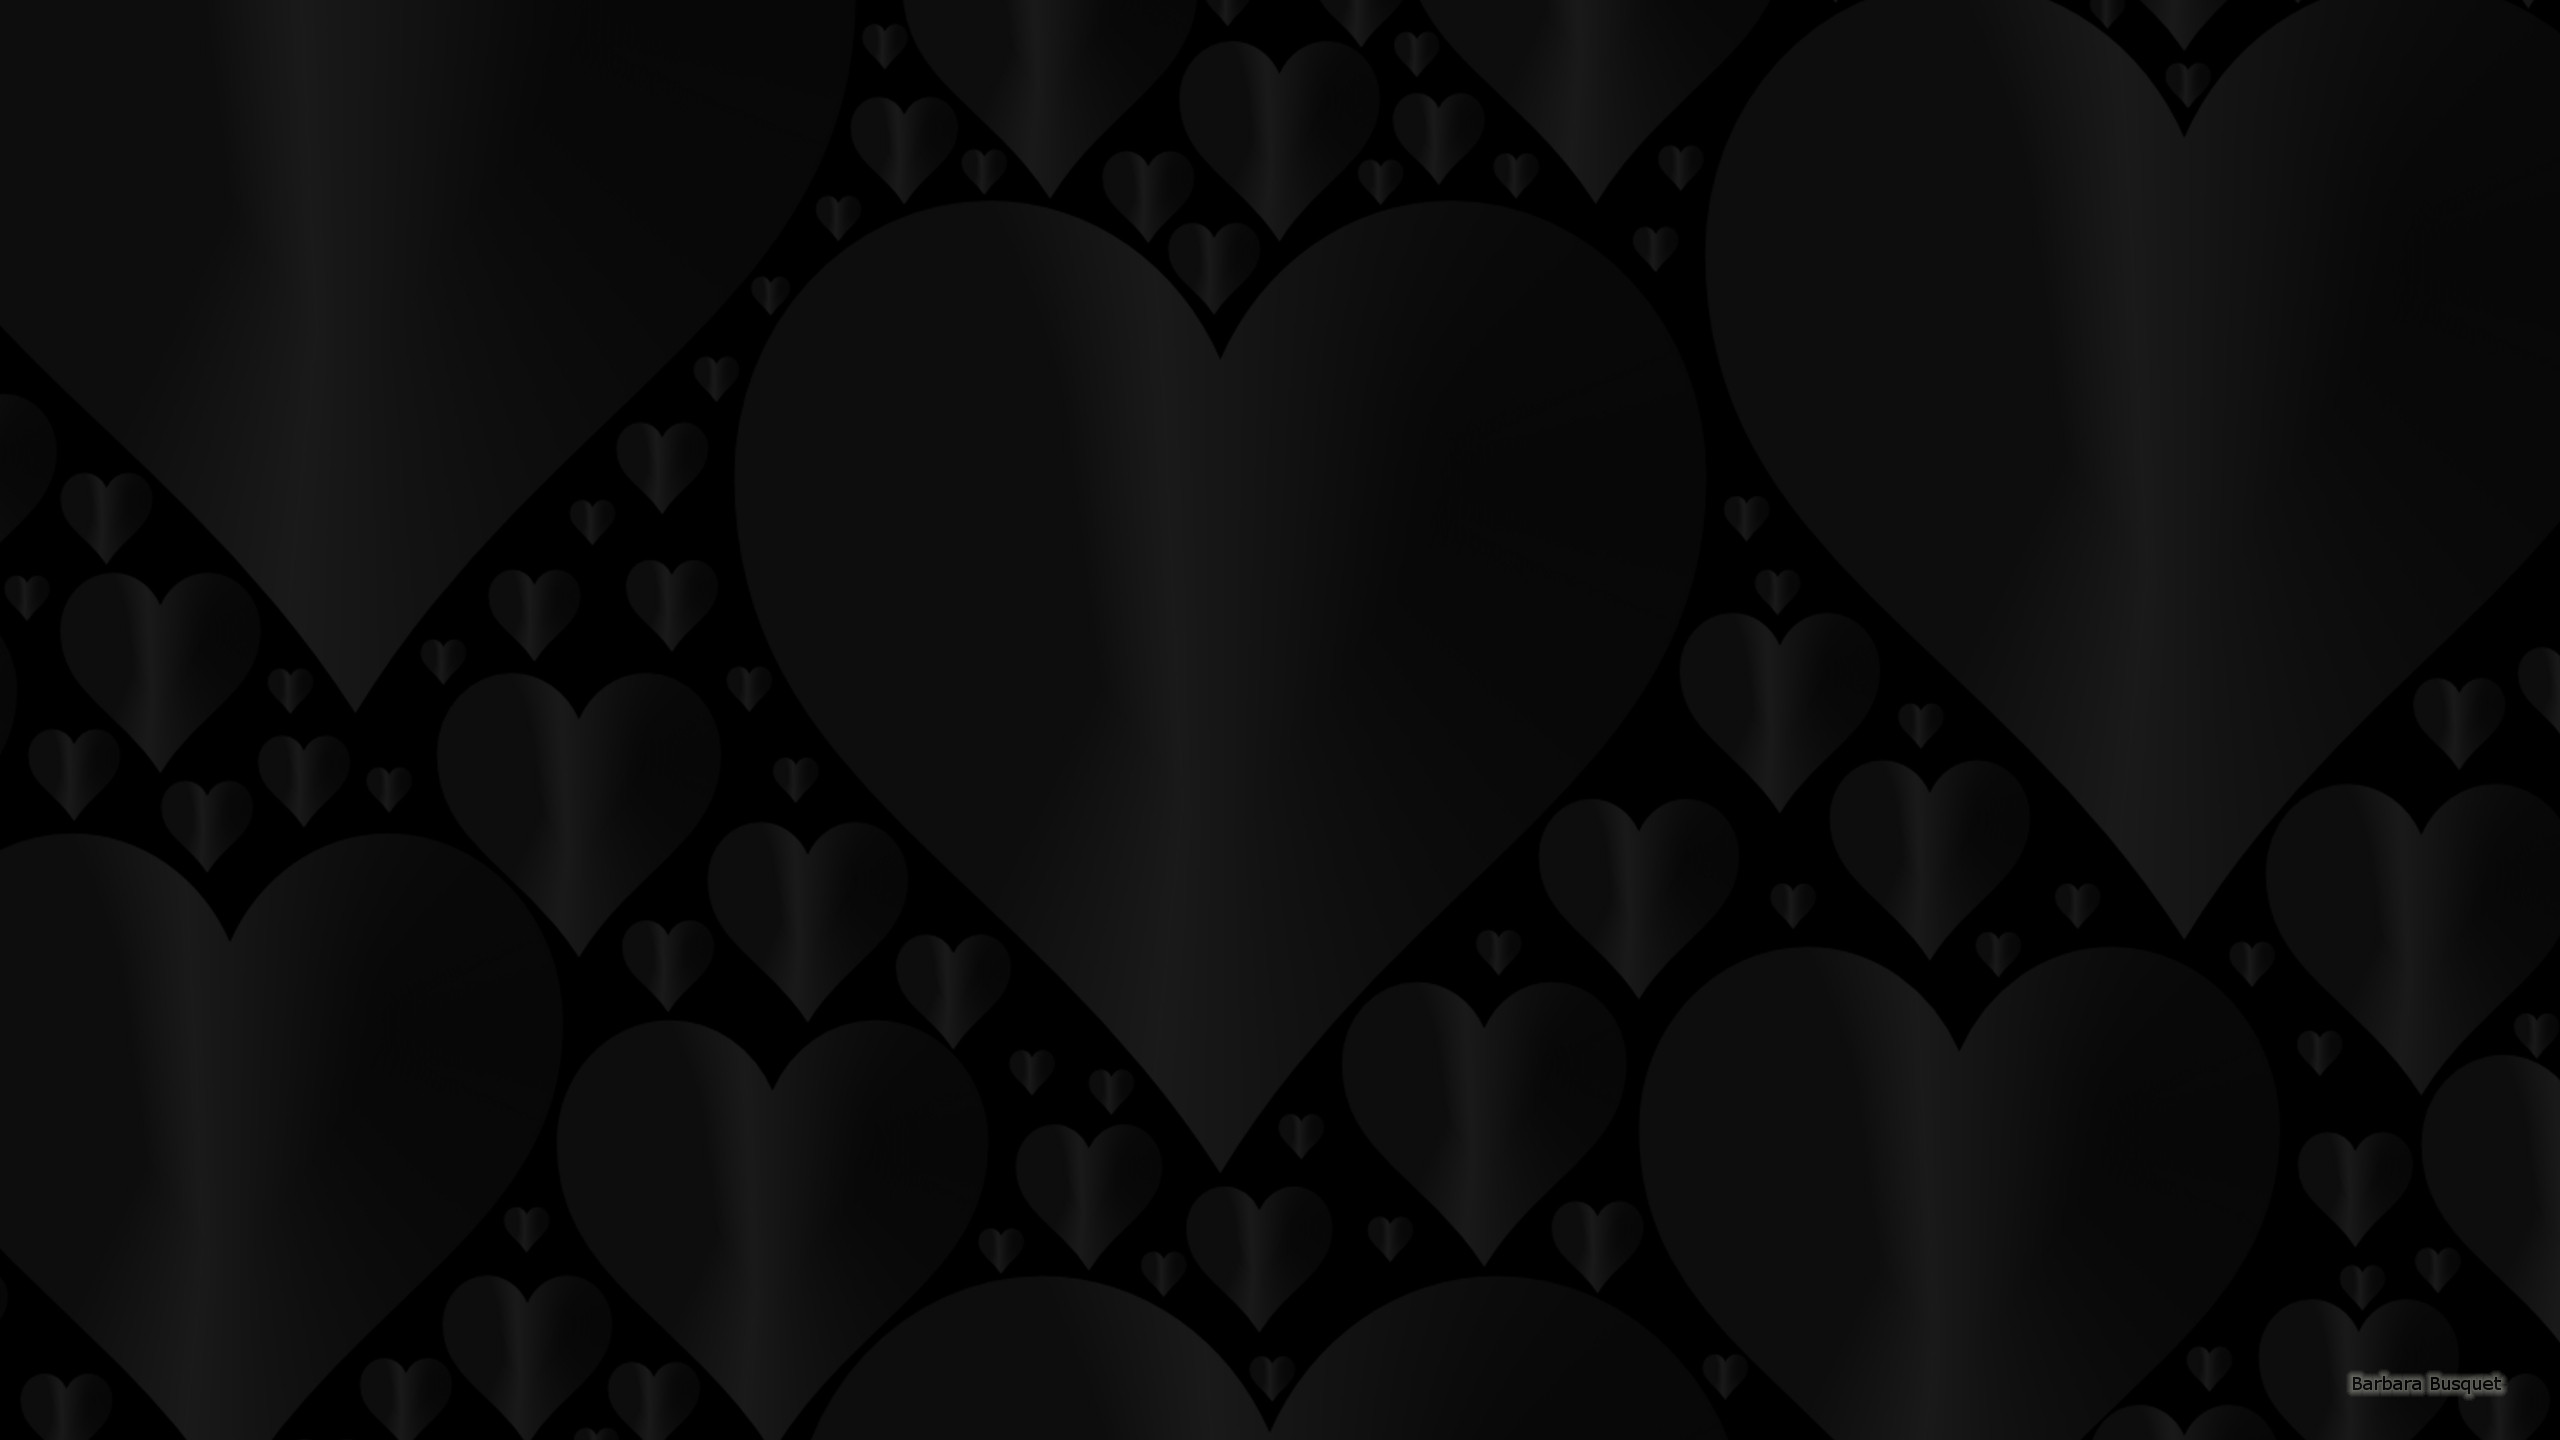 Wonderful Wallpaper Love Black And White - Black-wallpaper-with-hearts  Snapshot_996735.jpg